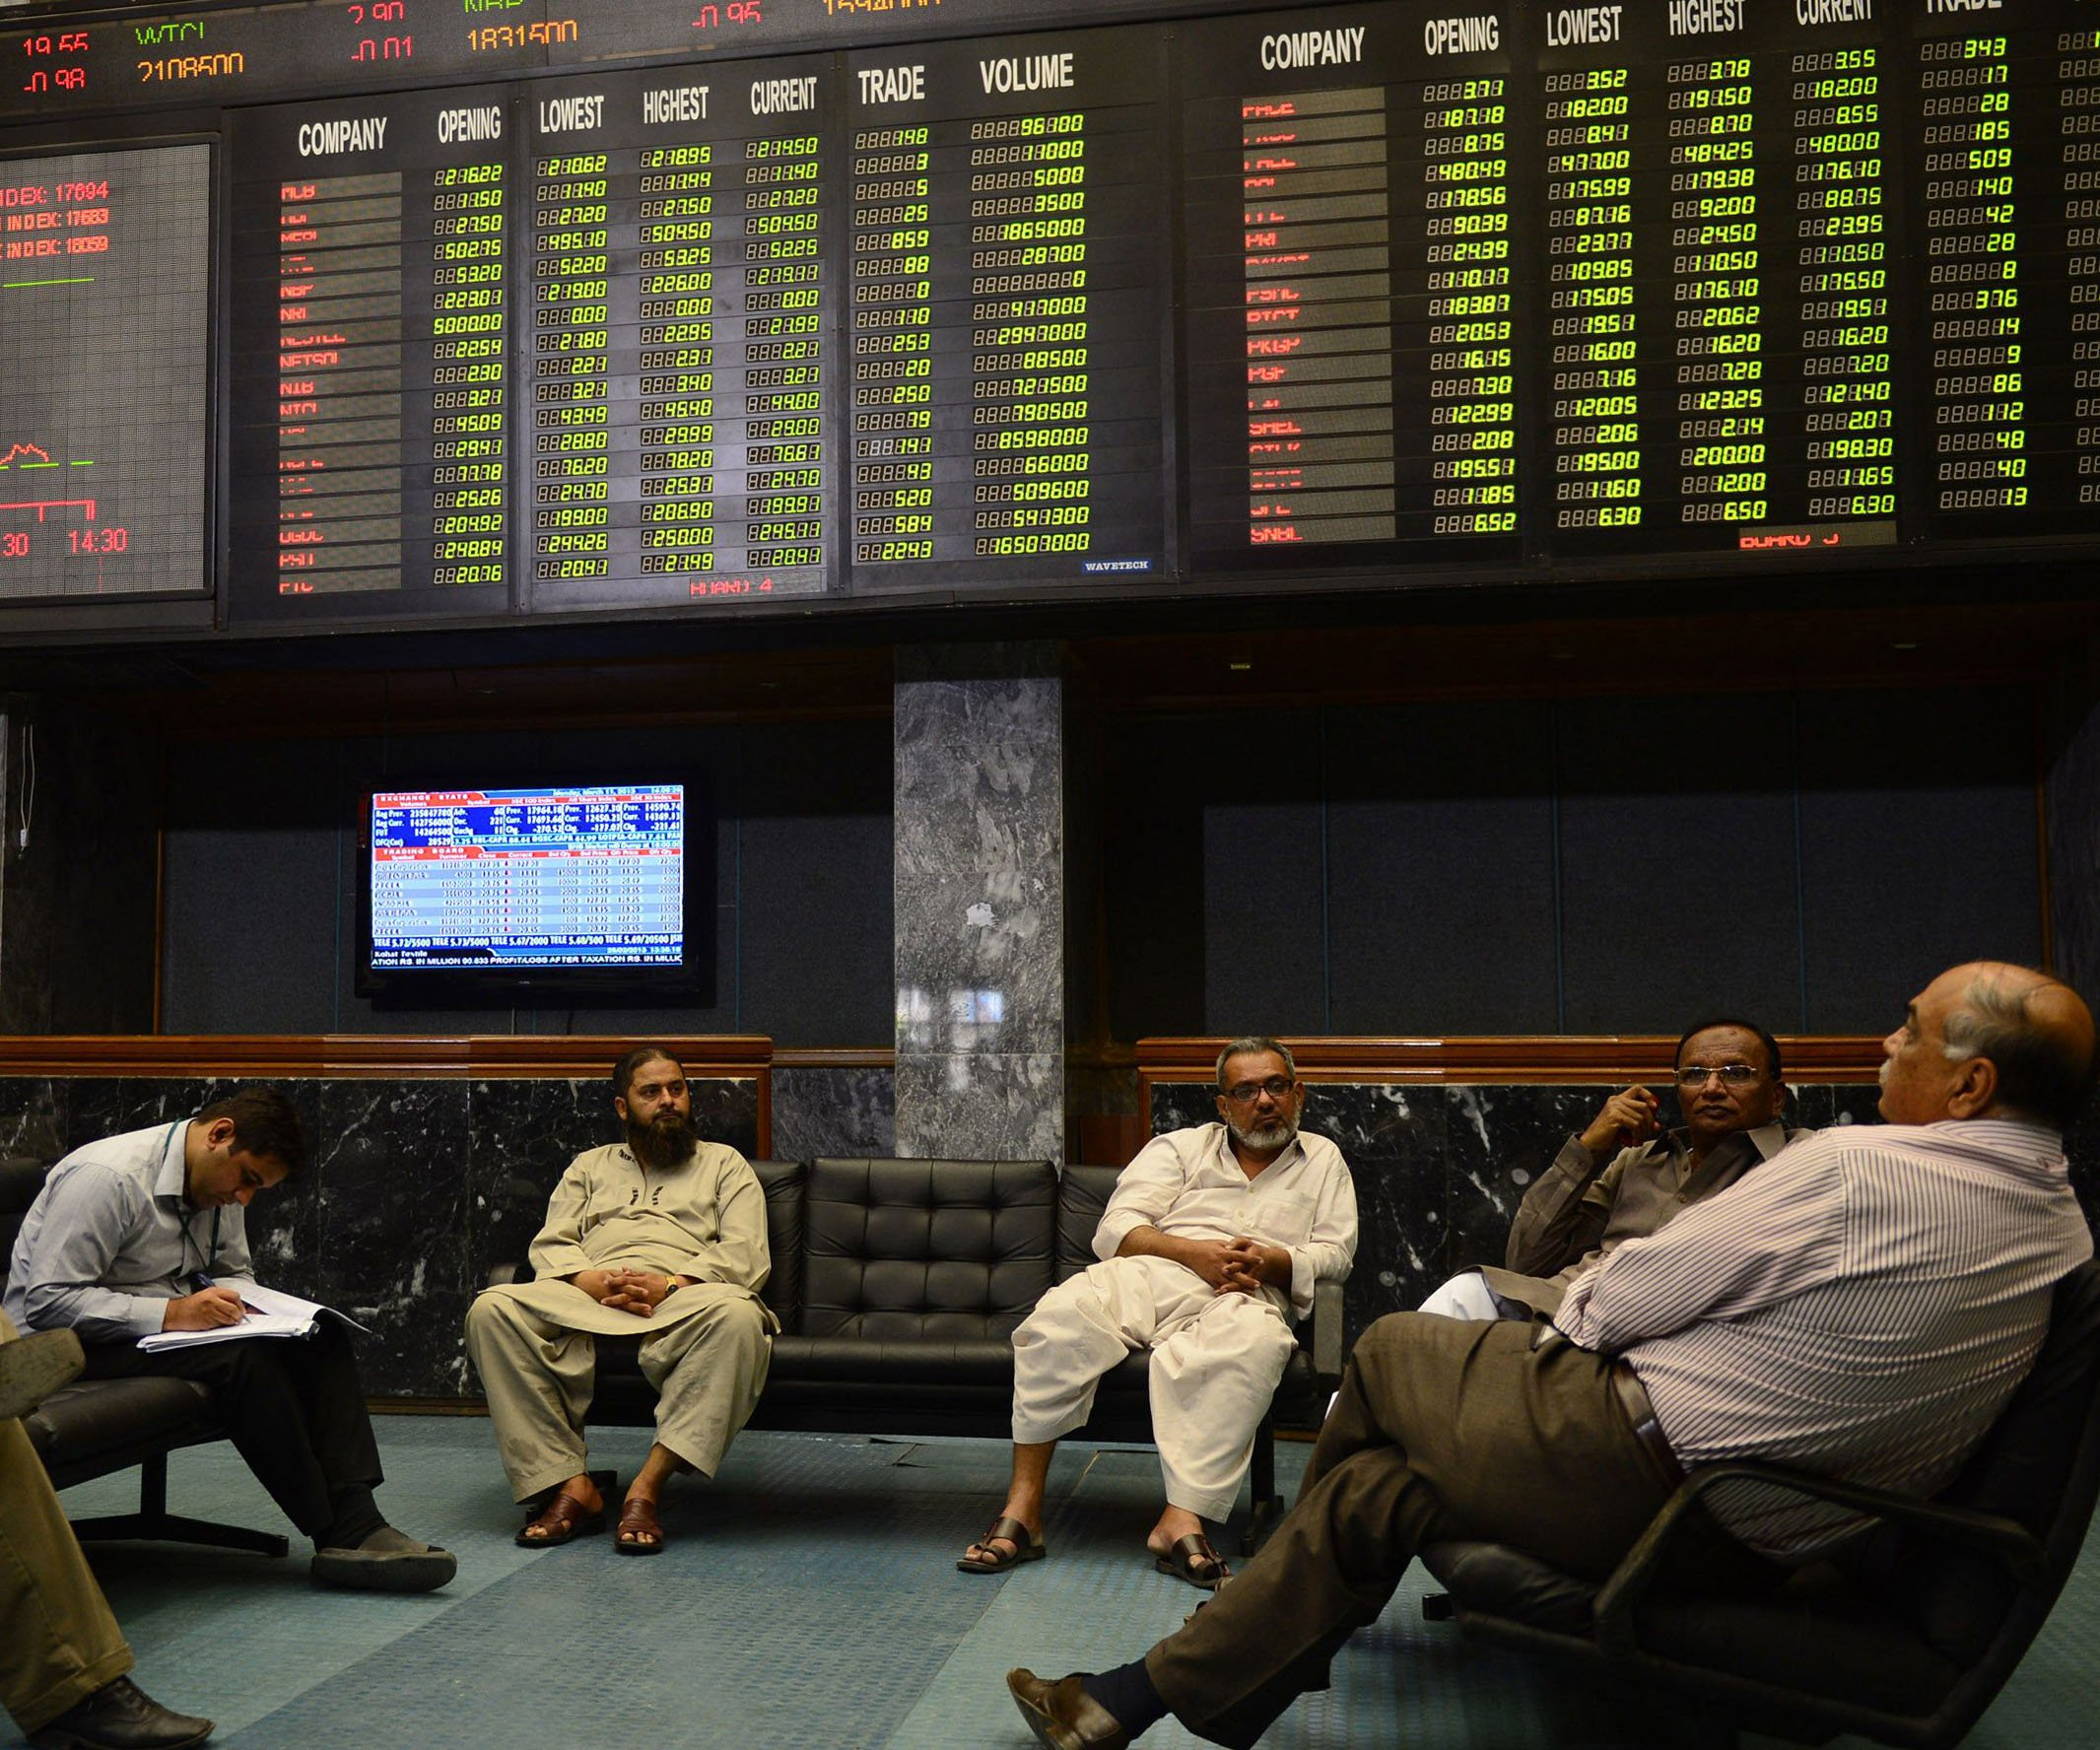 stock-market-kse-100-index-photo-afp-2-2-2-3-2-2-5-2-2-2-3-2-2-2